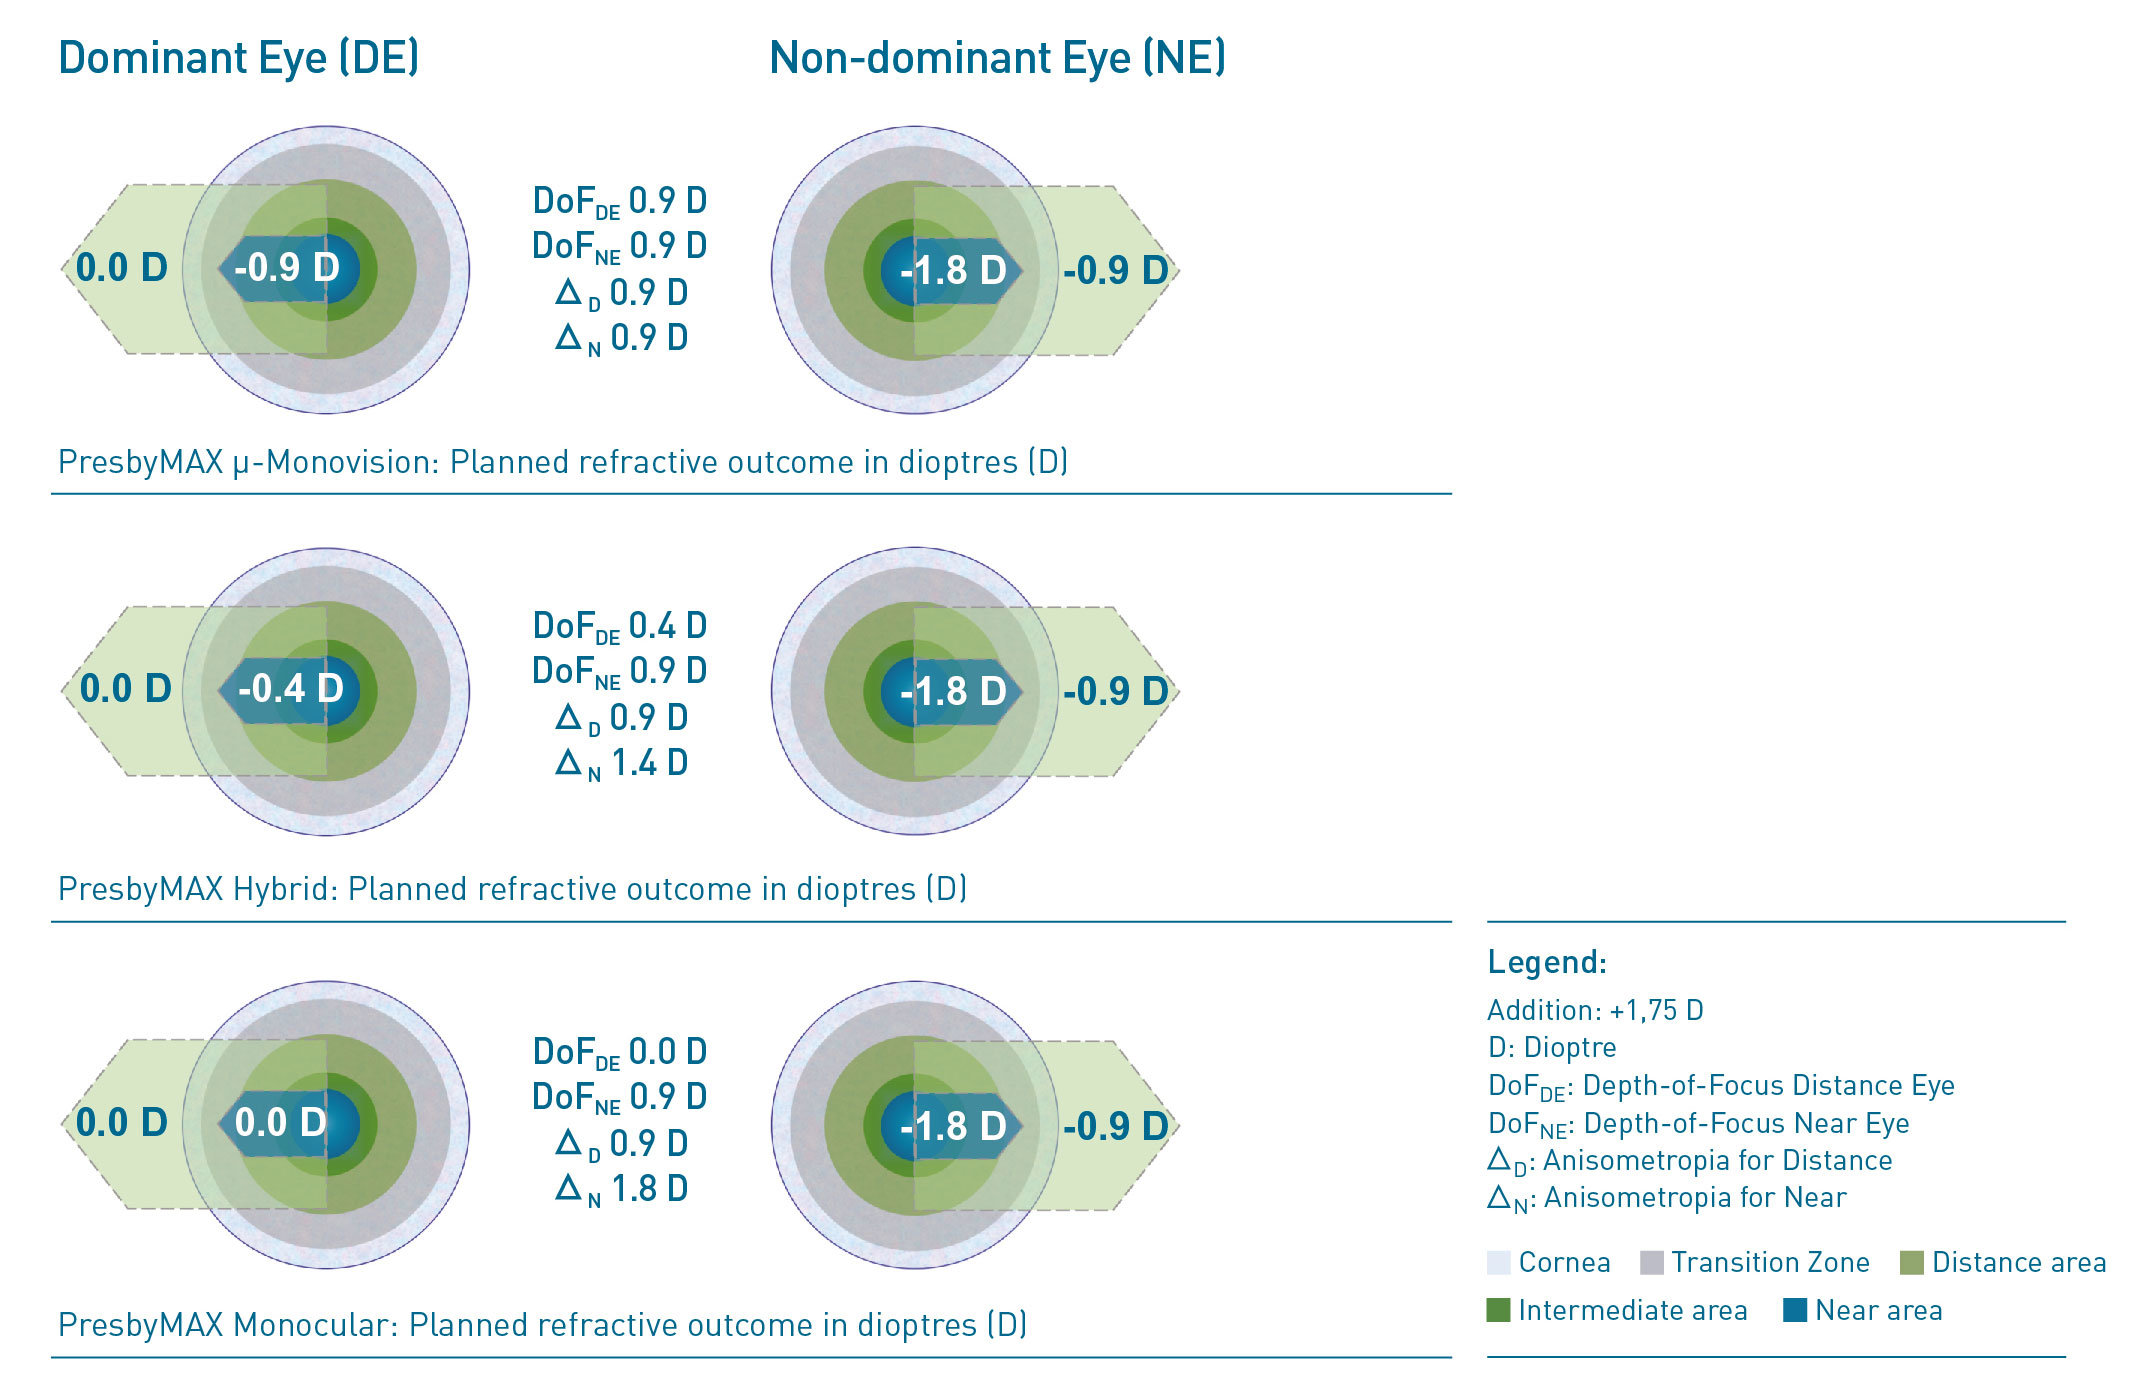 Value comparison of dominant eye and non-dominant eye